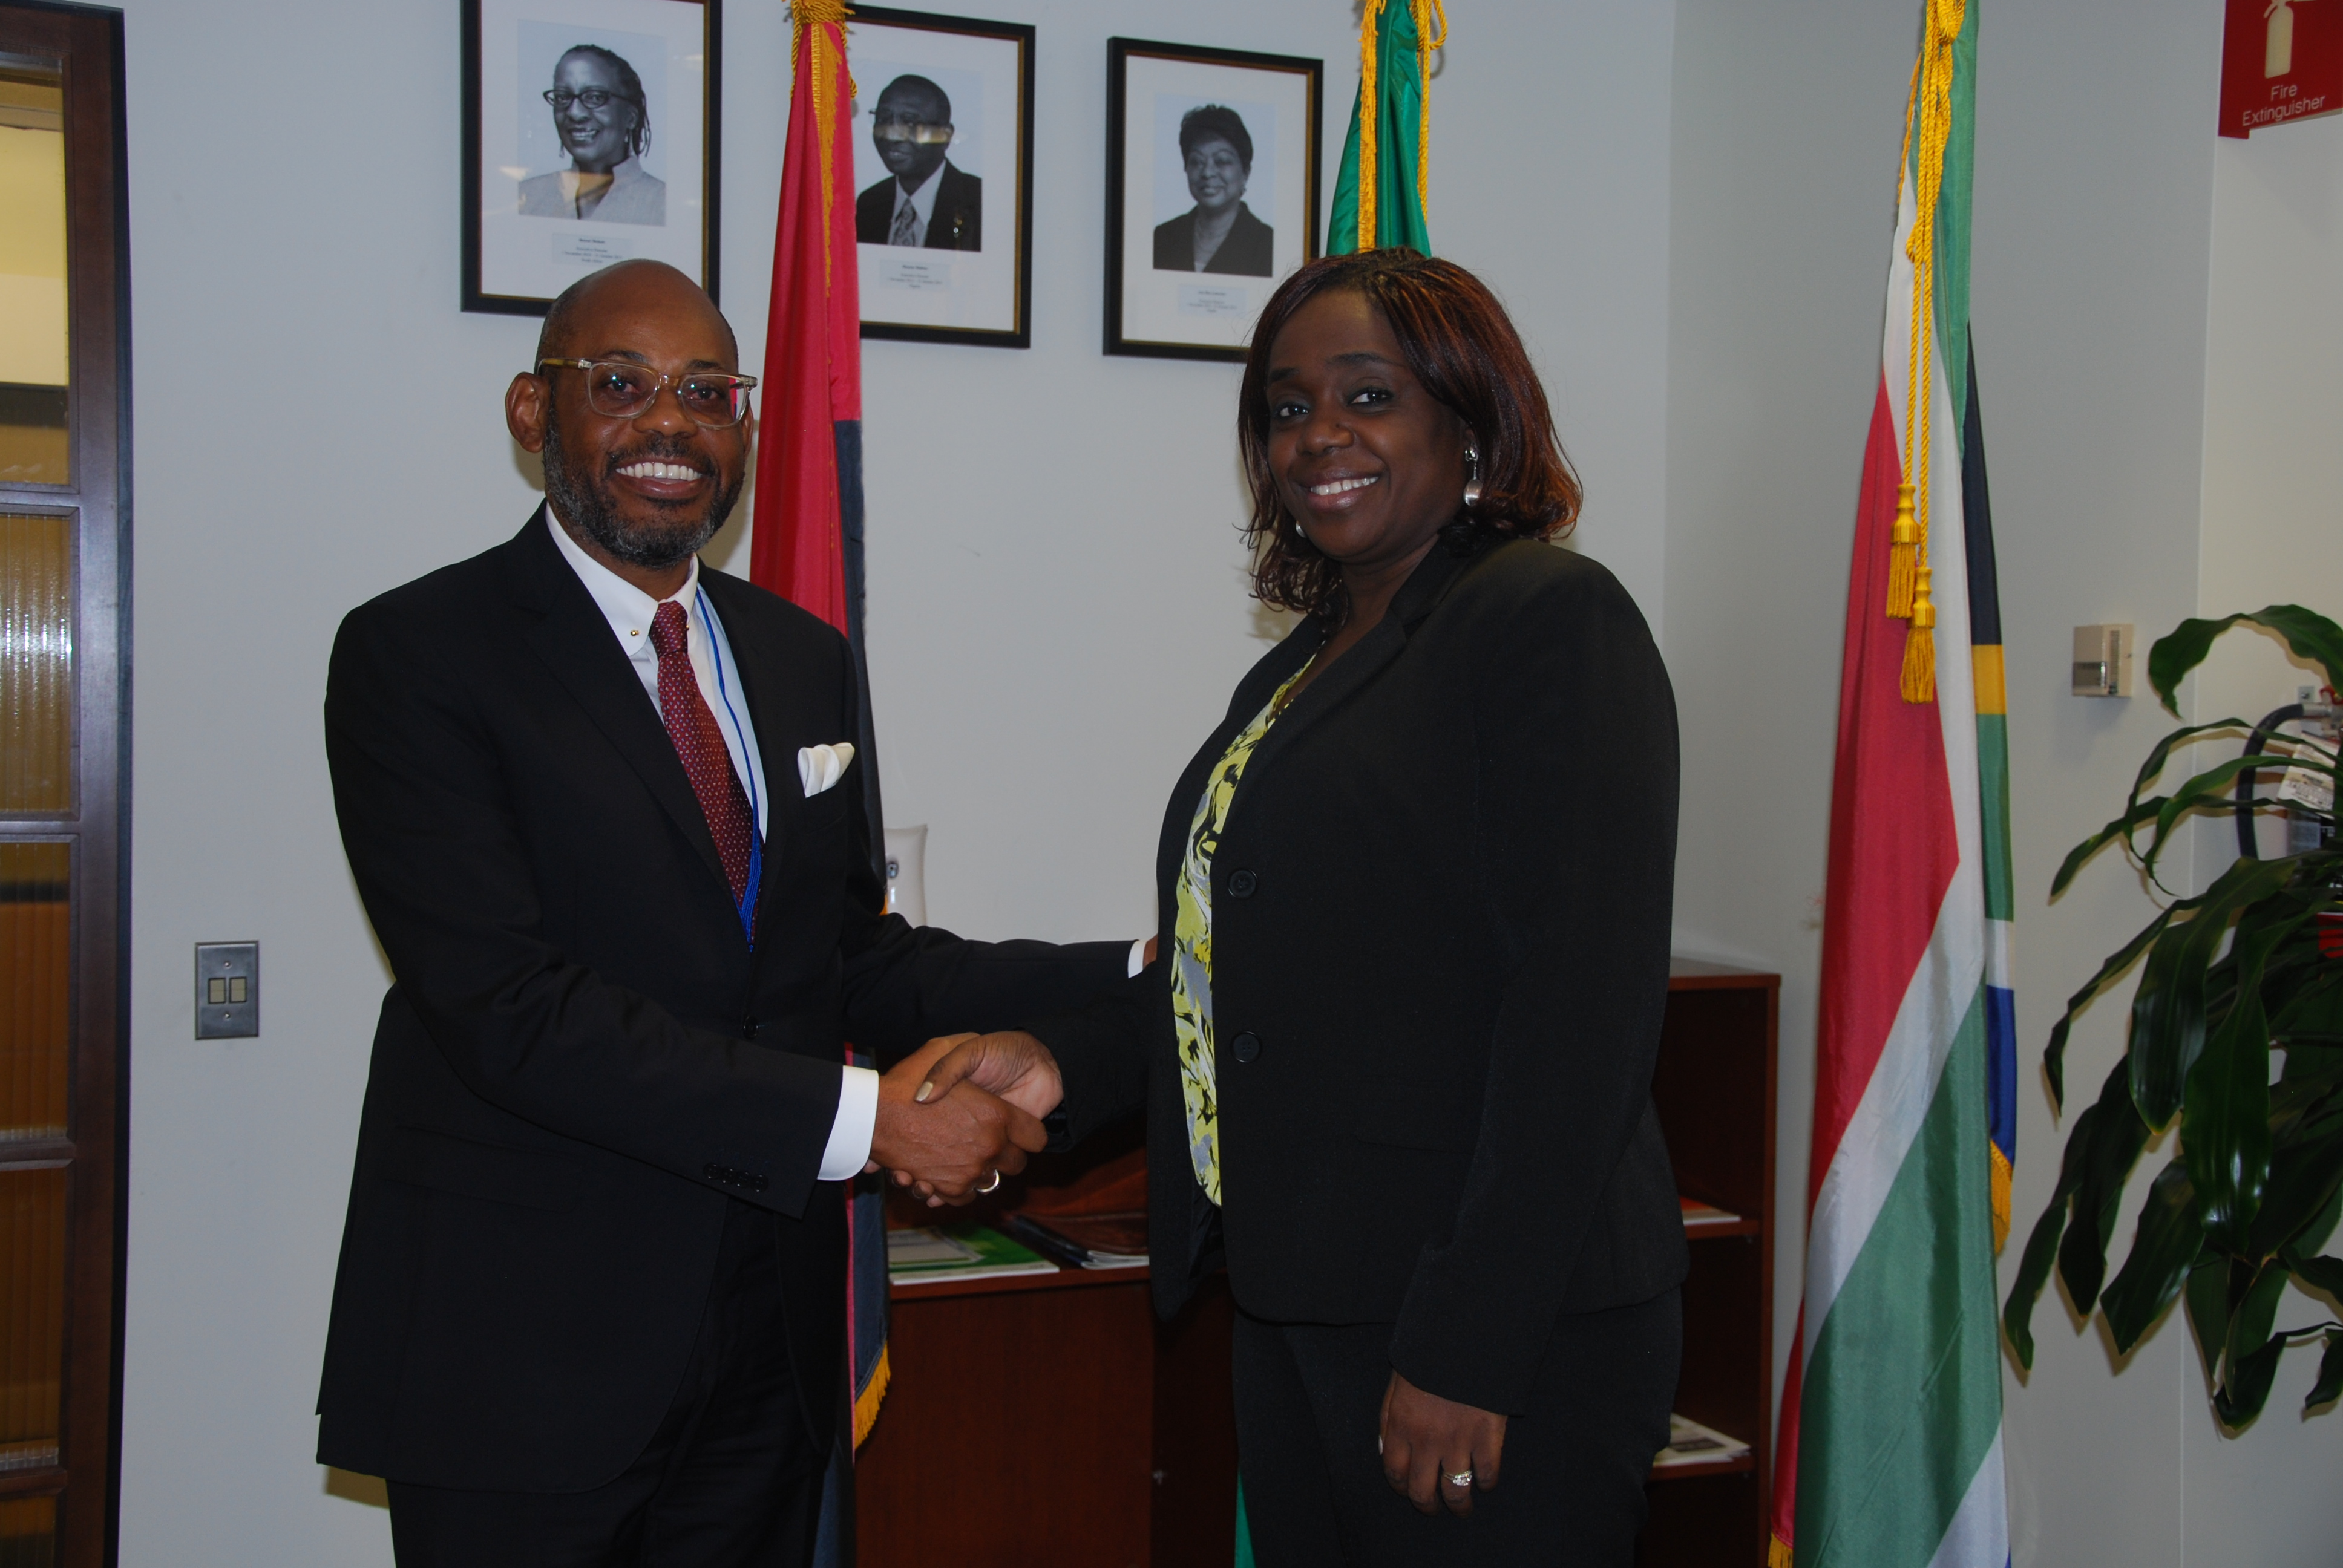 Photo of Nigeria's Finance Minister In Handing Shake With Angolan Counterpart At W'Bank Spring Meeting